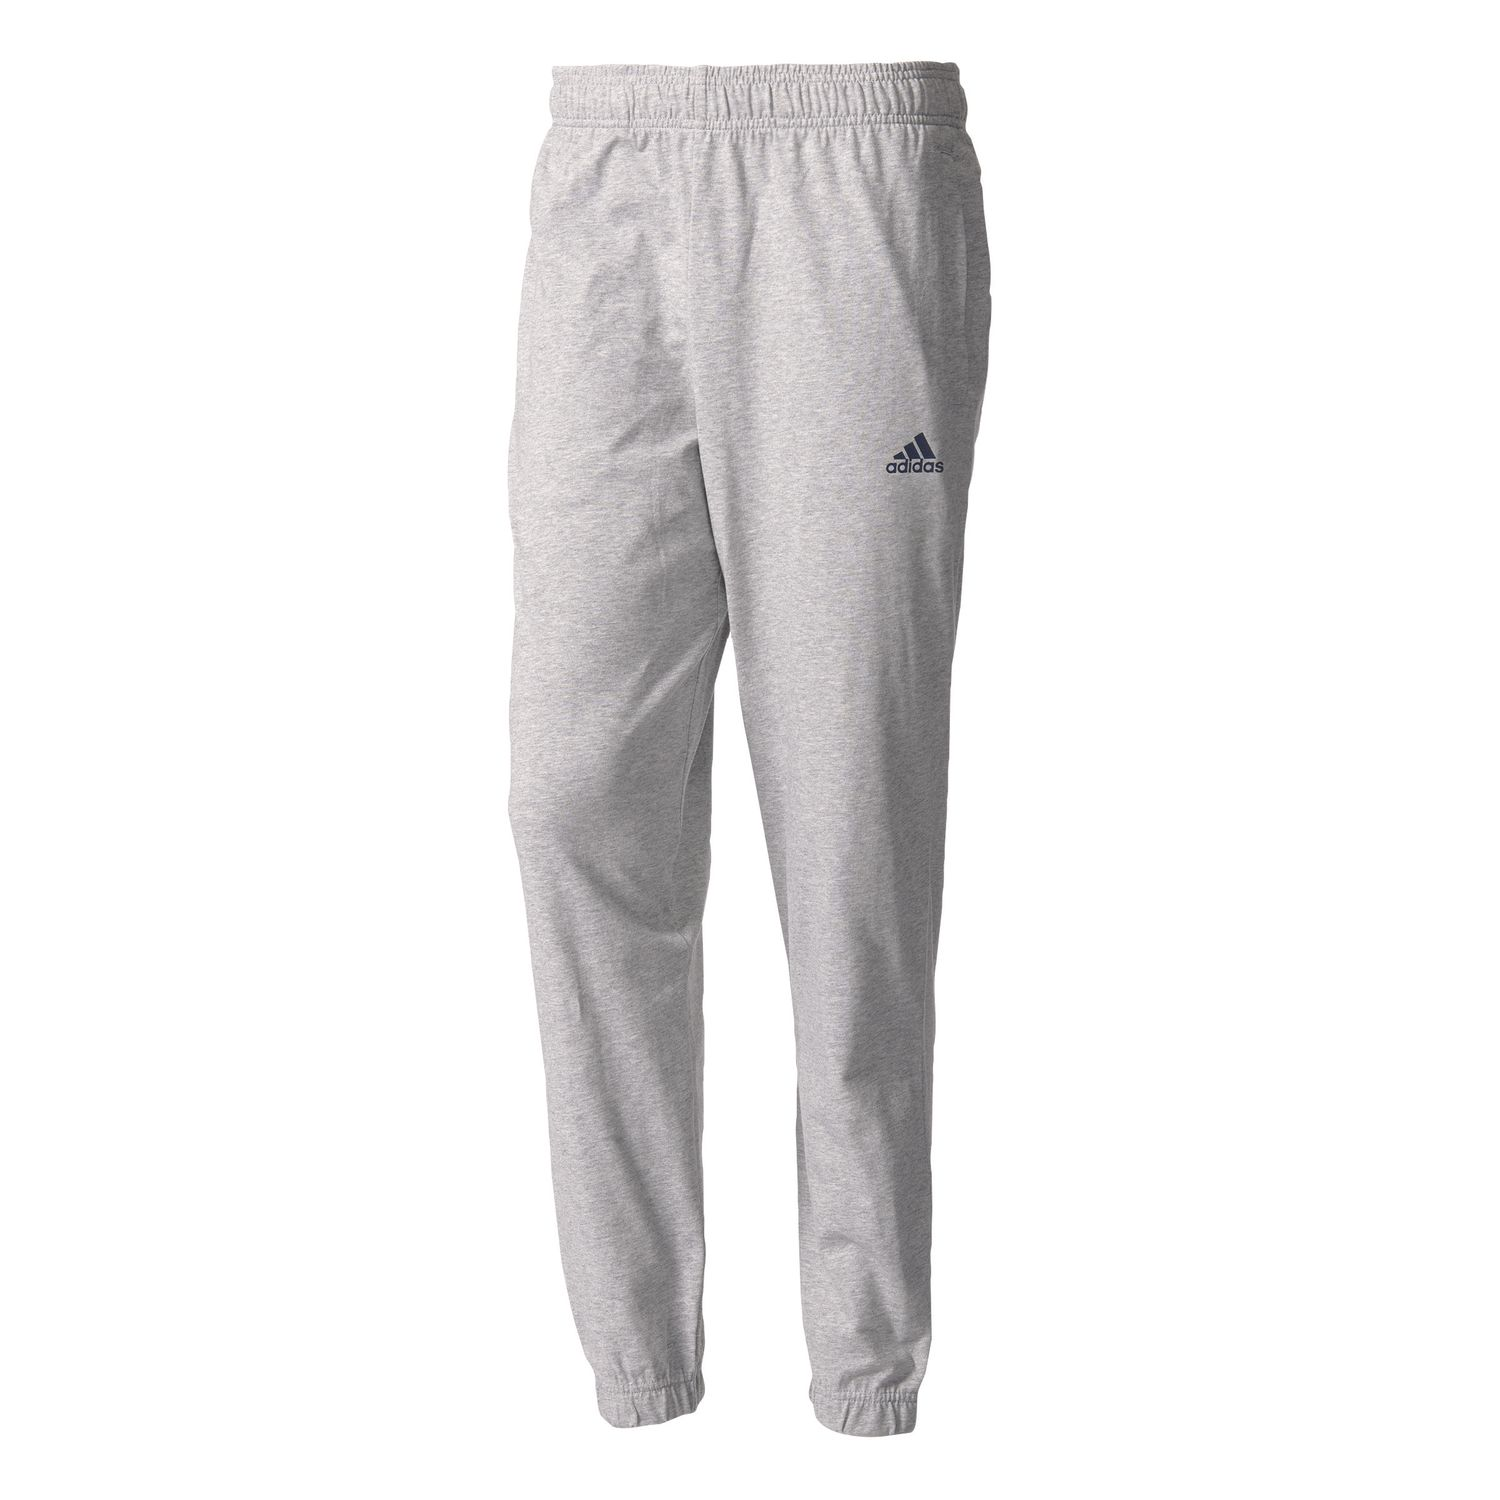 6177428889cfc7 adidas Essentials Tapered Banded Single Jersey Pant Trainingshose BK7406  Grey